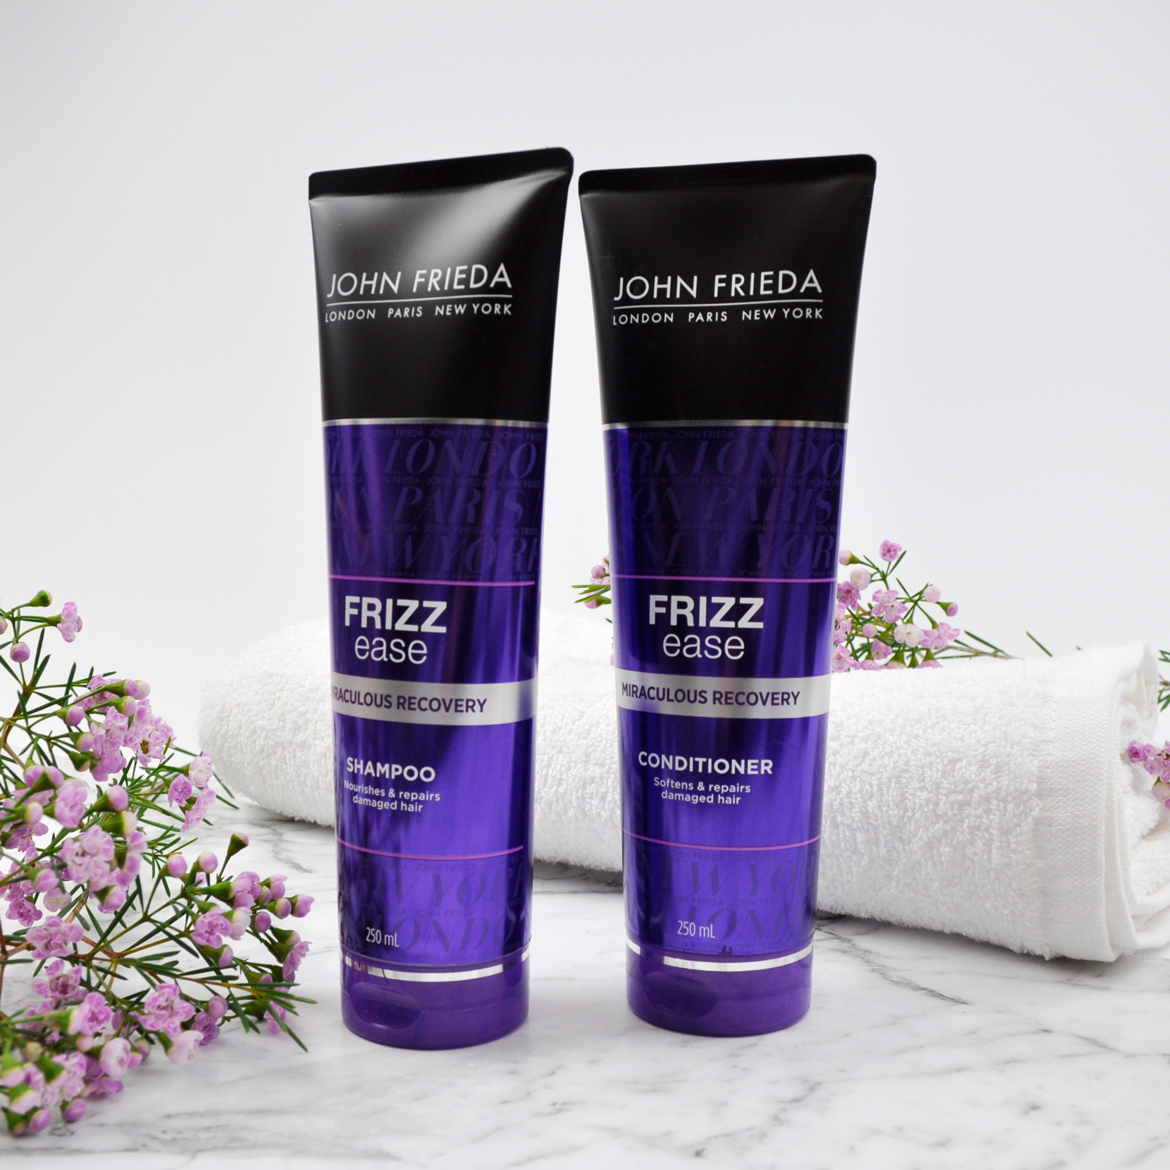 John Frieda Frizz Ease Miraculous Recovery Shampoo and Conditioner